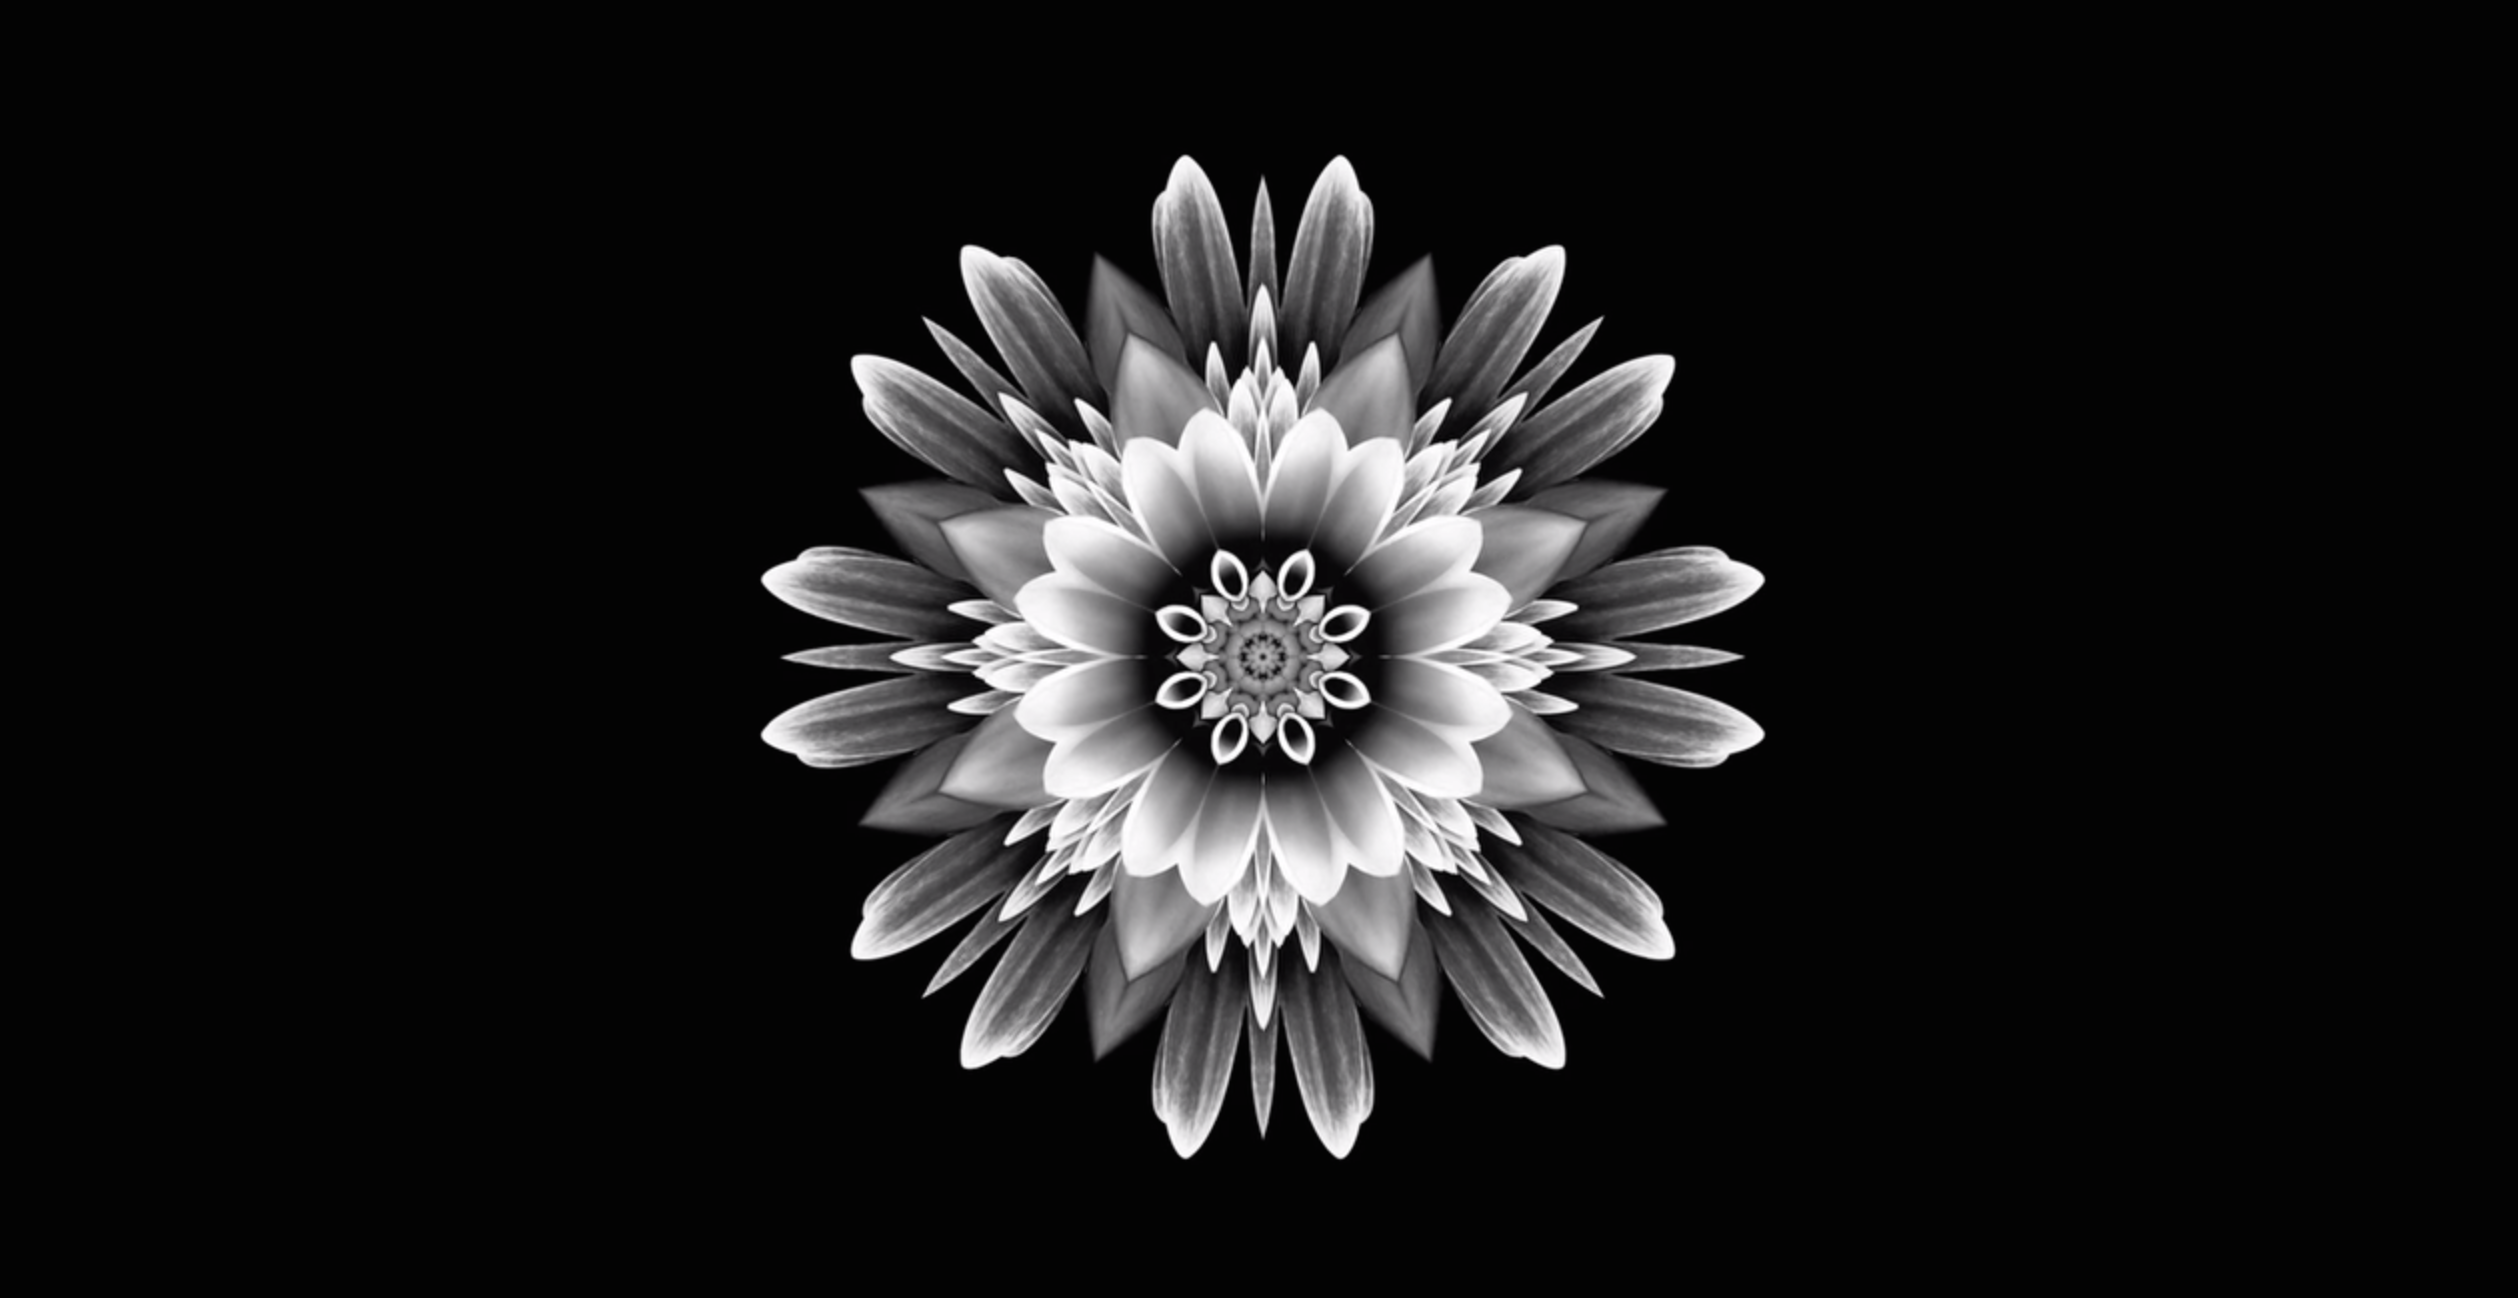 A kaleidoscopic flower device created for digital screens and window displays at funeral directors A.B. Walker's branches. The symbol moves slowly at the speed of a clock